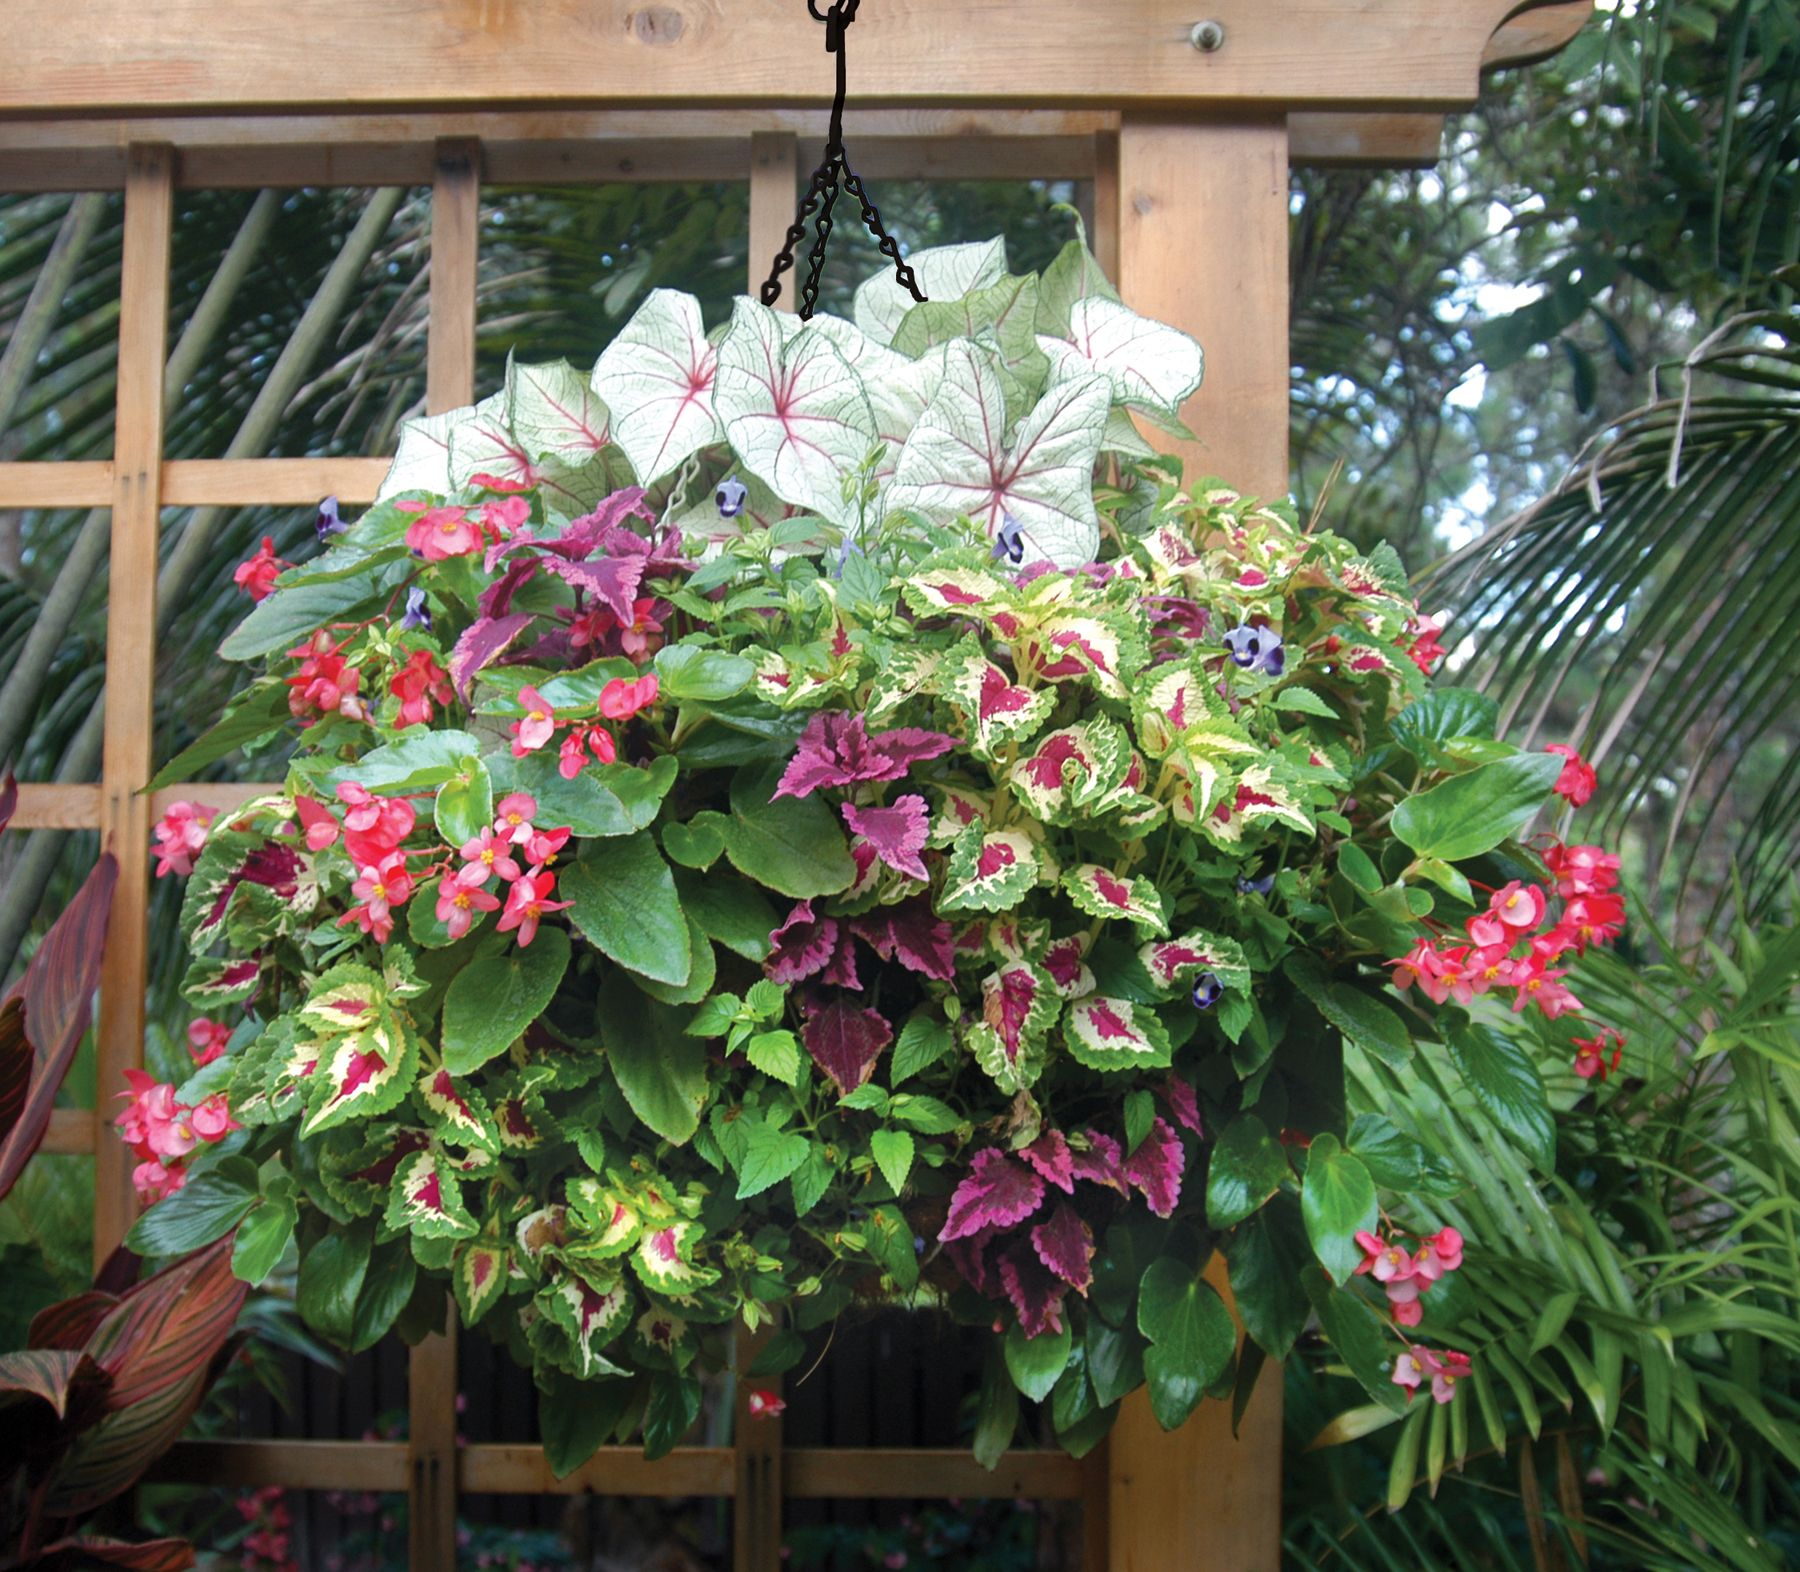 How to make hanging baskets - 17 Best Images About Hanging Basket Ideas On Pinterest Plants Container Gardening And Planters